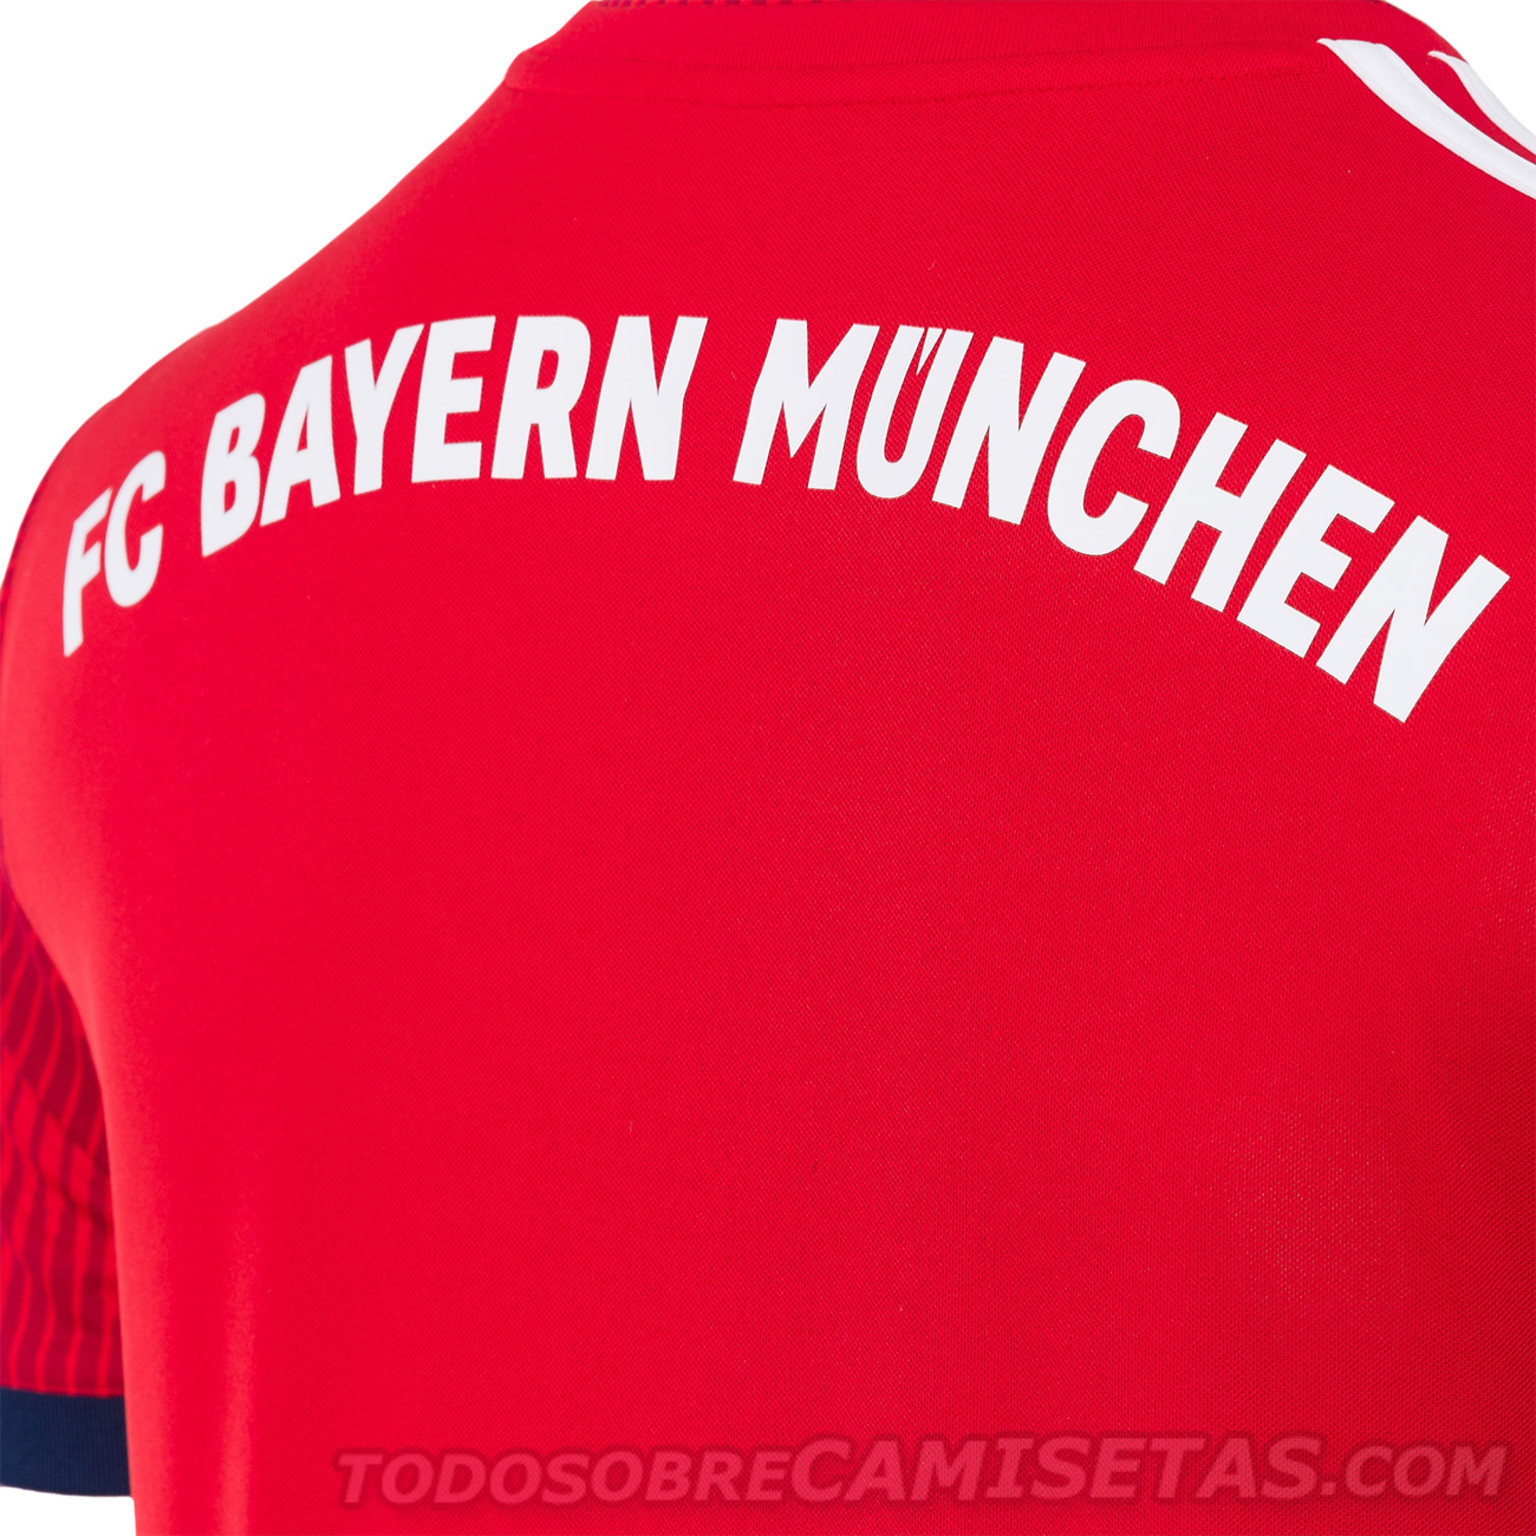 Bayern-Munich-2018-19-adidas-new-home-kit-13.jpg